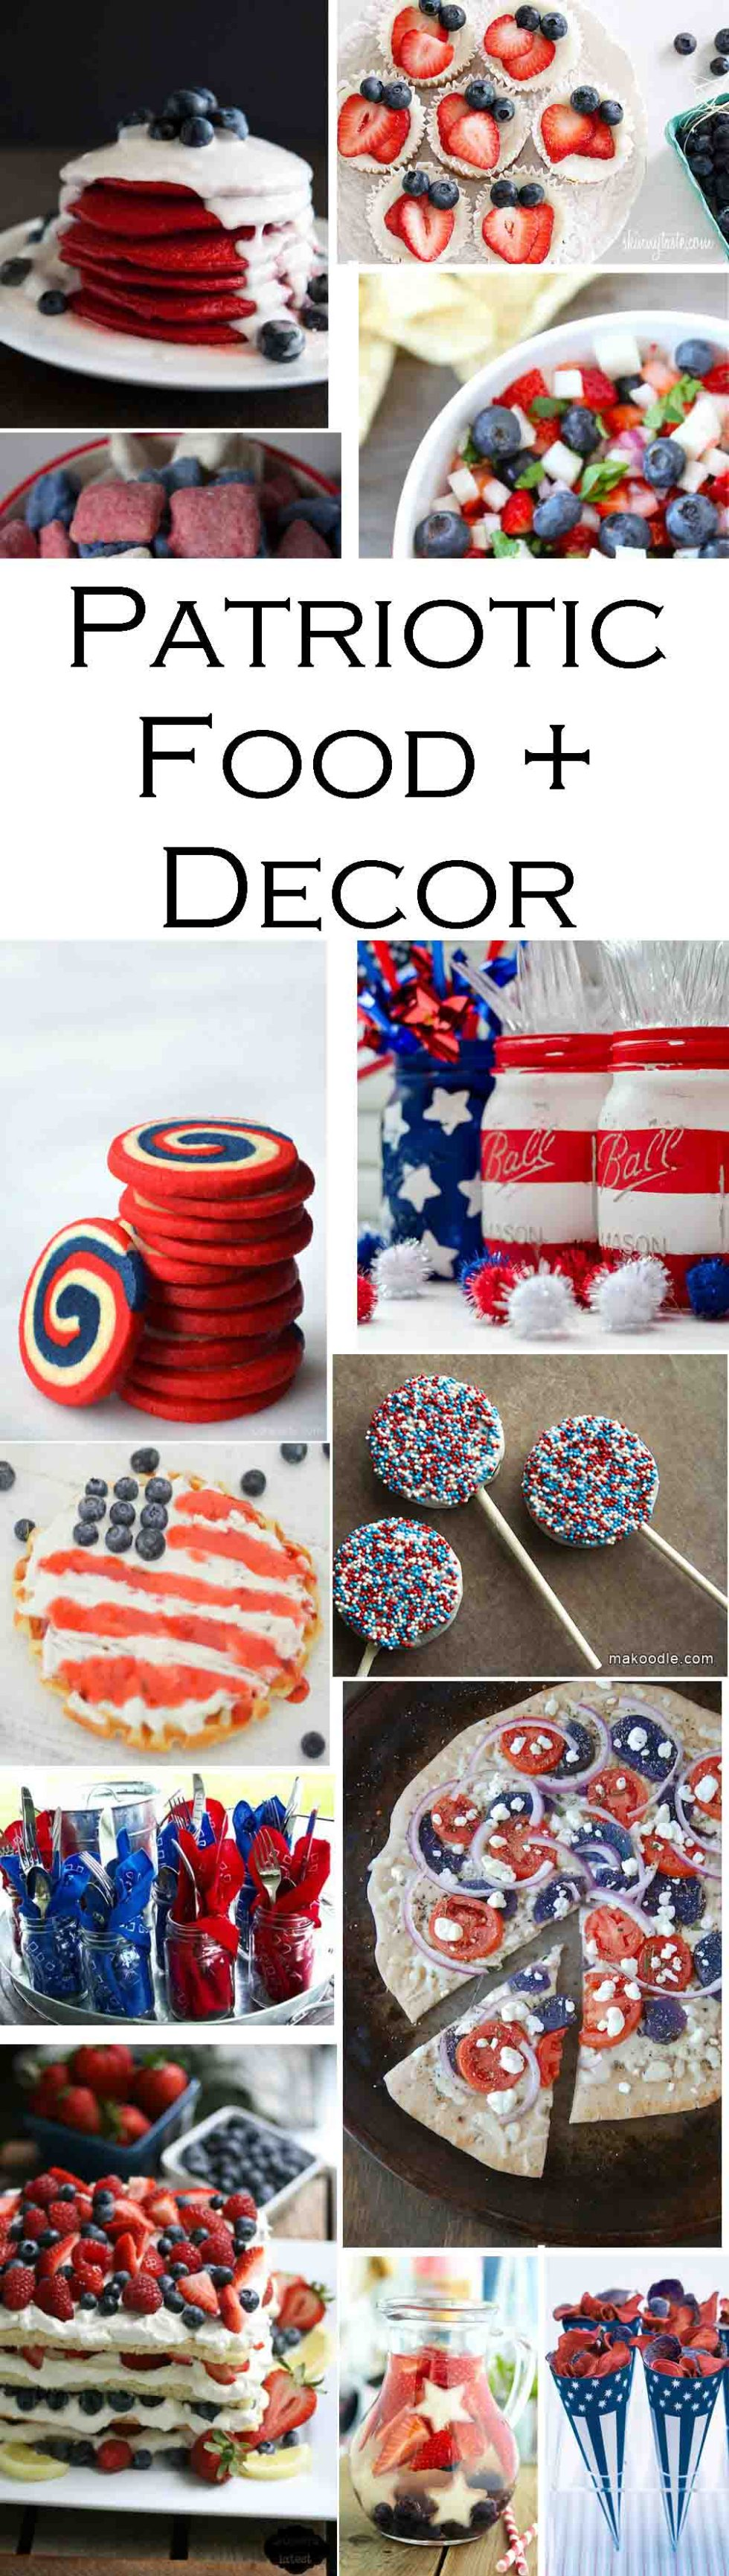 Red, White, + Blue Patriotic Food + Decor - Red, White, + Blue Breakfast Recipe - Patriotic Treats + Snacks #patriotic #july4threcipes #fourthofjuly